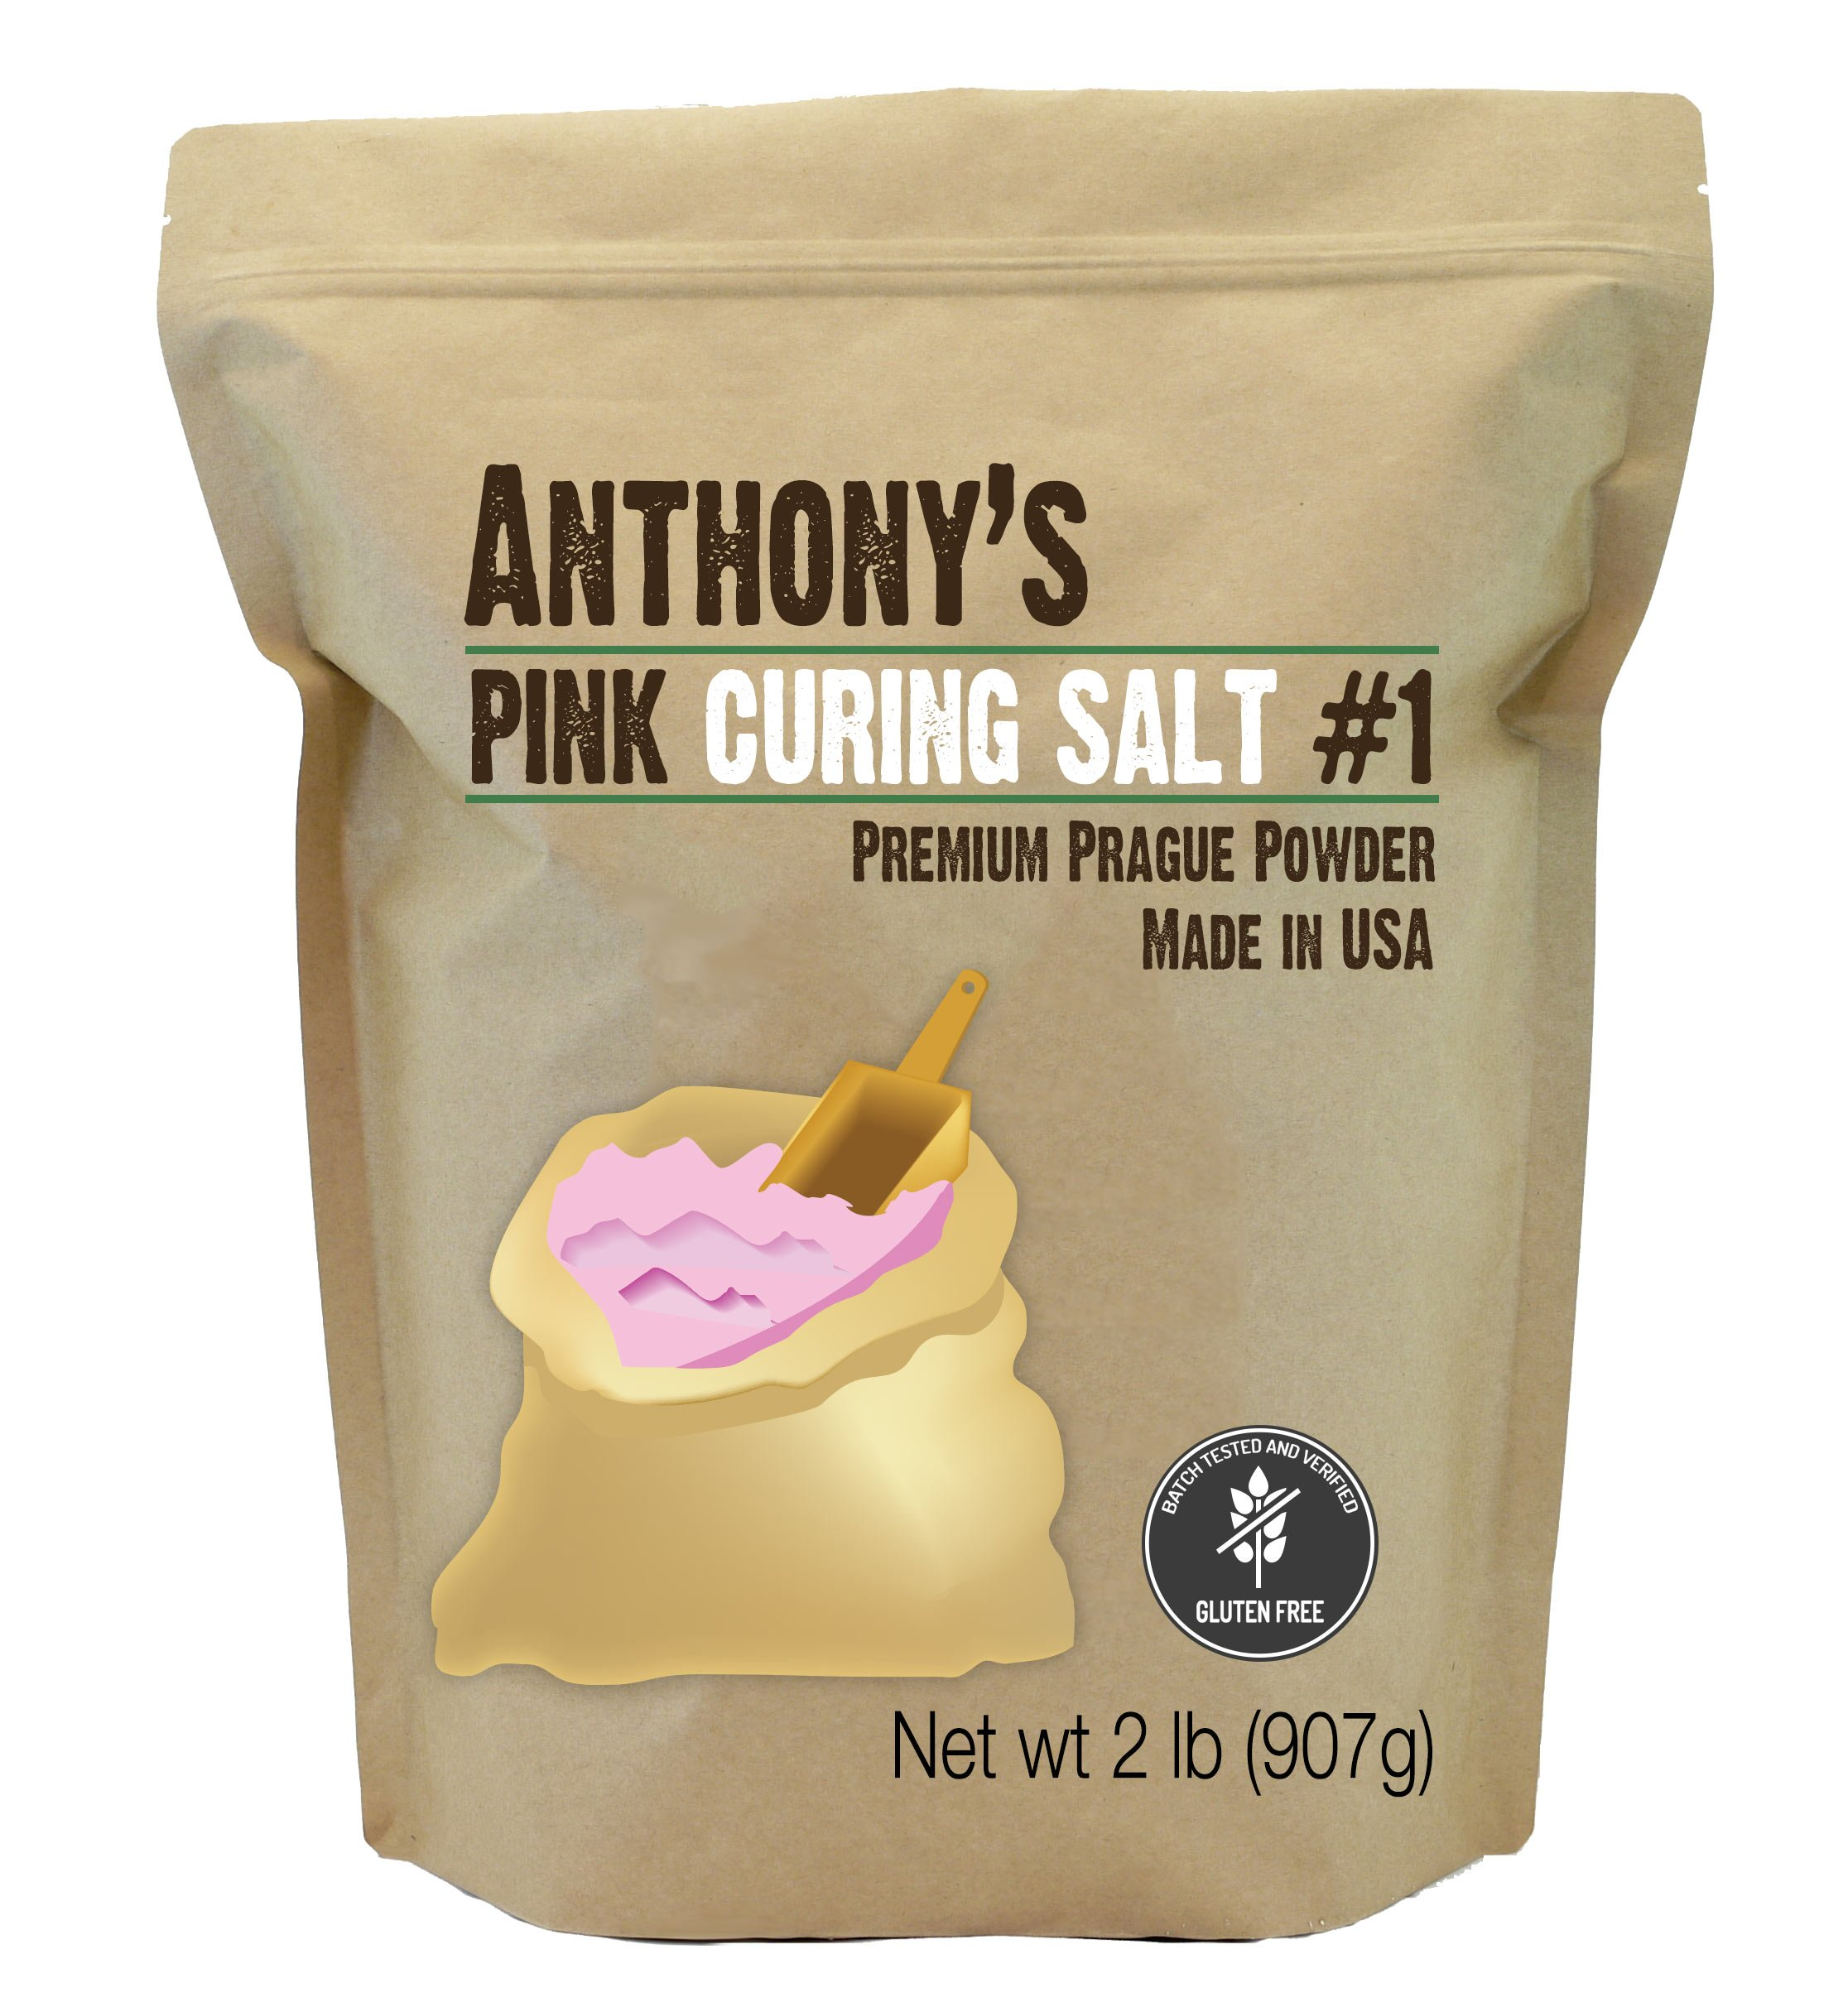 Pink Curing Salt #1 (2lb Prague Powder) by Anthony's, Verified Gluten-Free